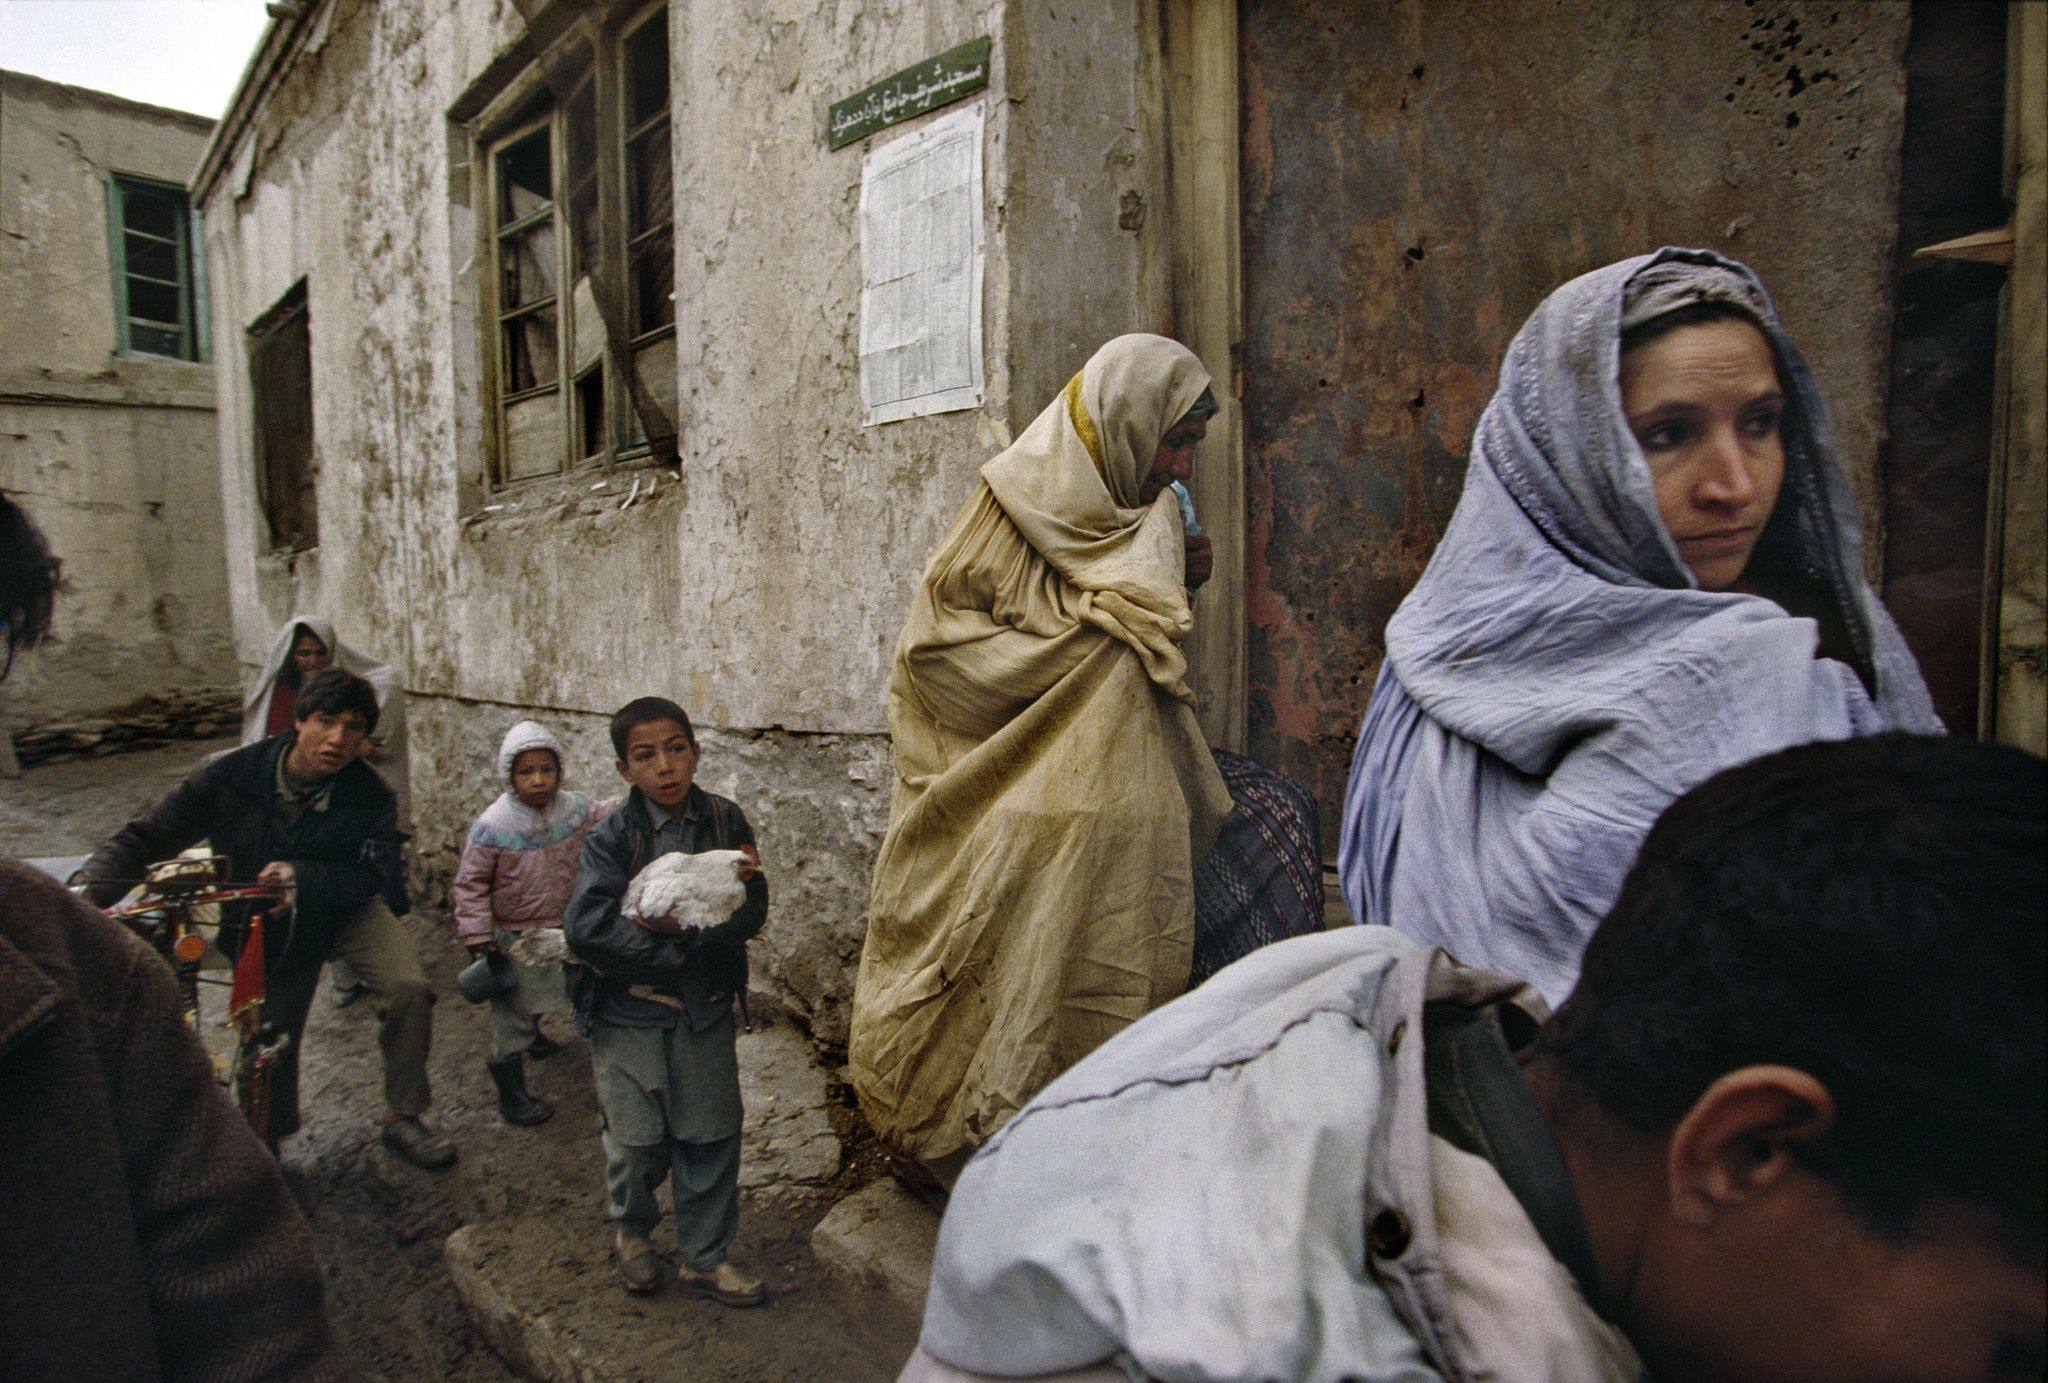 A Kabul family flees its home during factional fighting between President Rabbani's government forces and opposition Hezb-i-Islami and Hezb-...